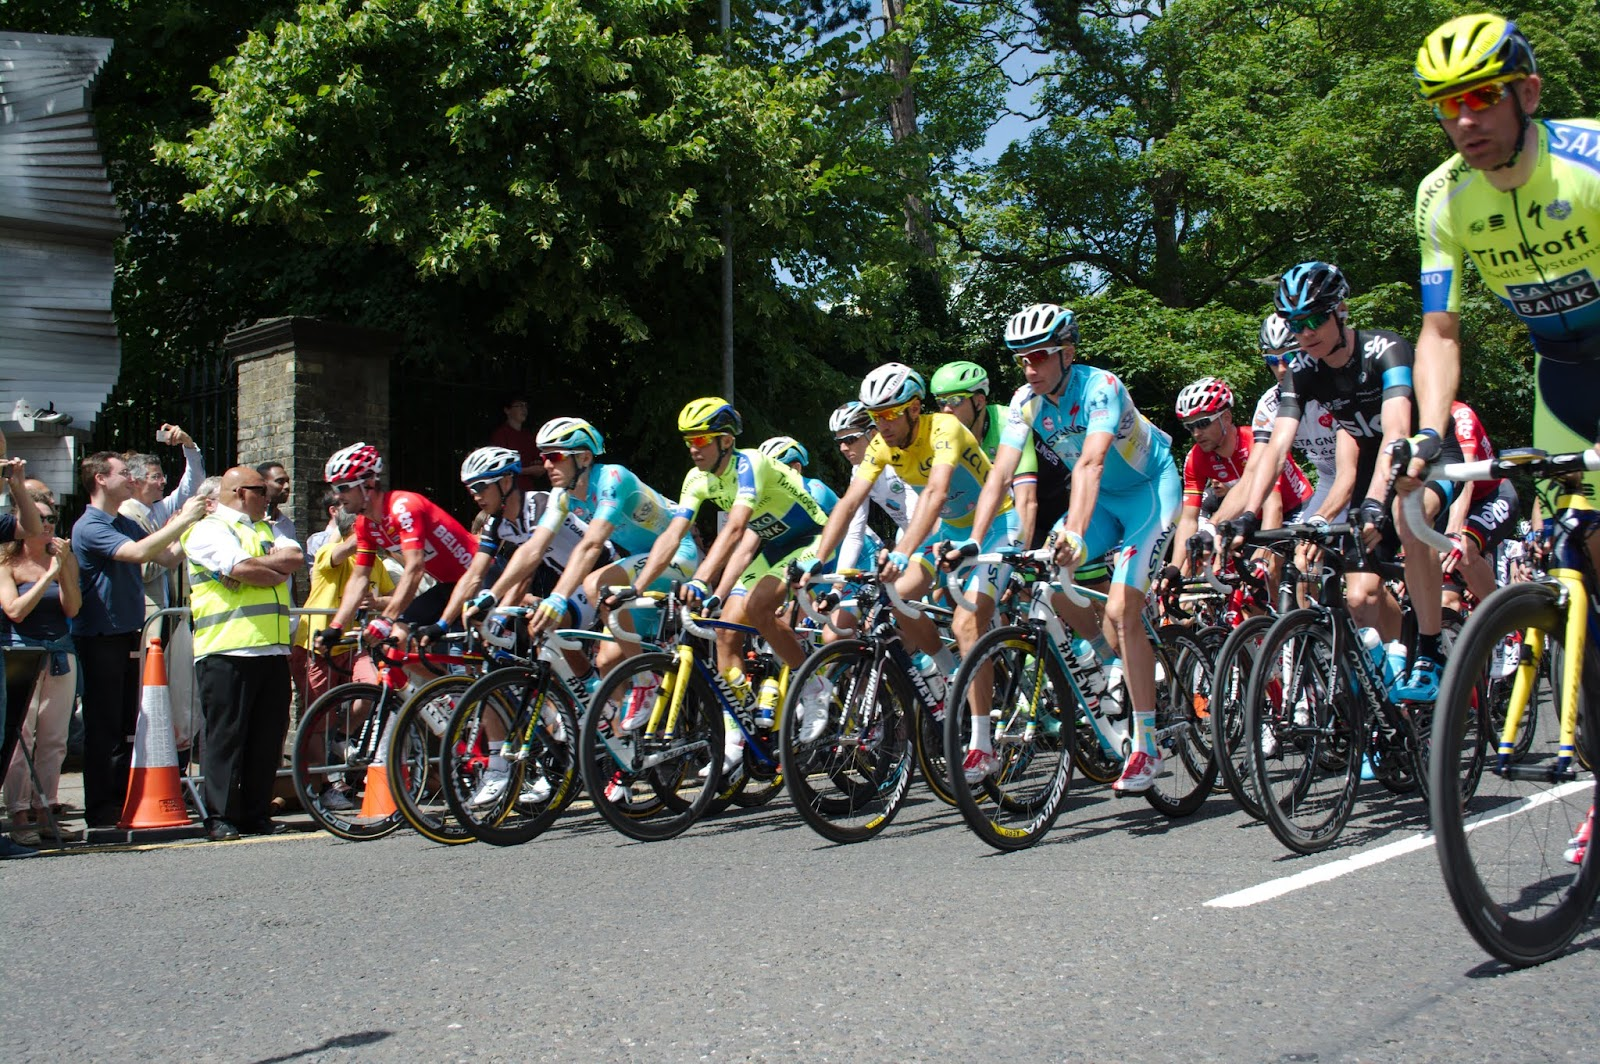 Tour de France in Cambridge photo album